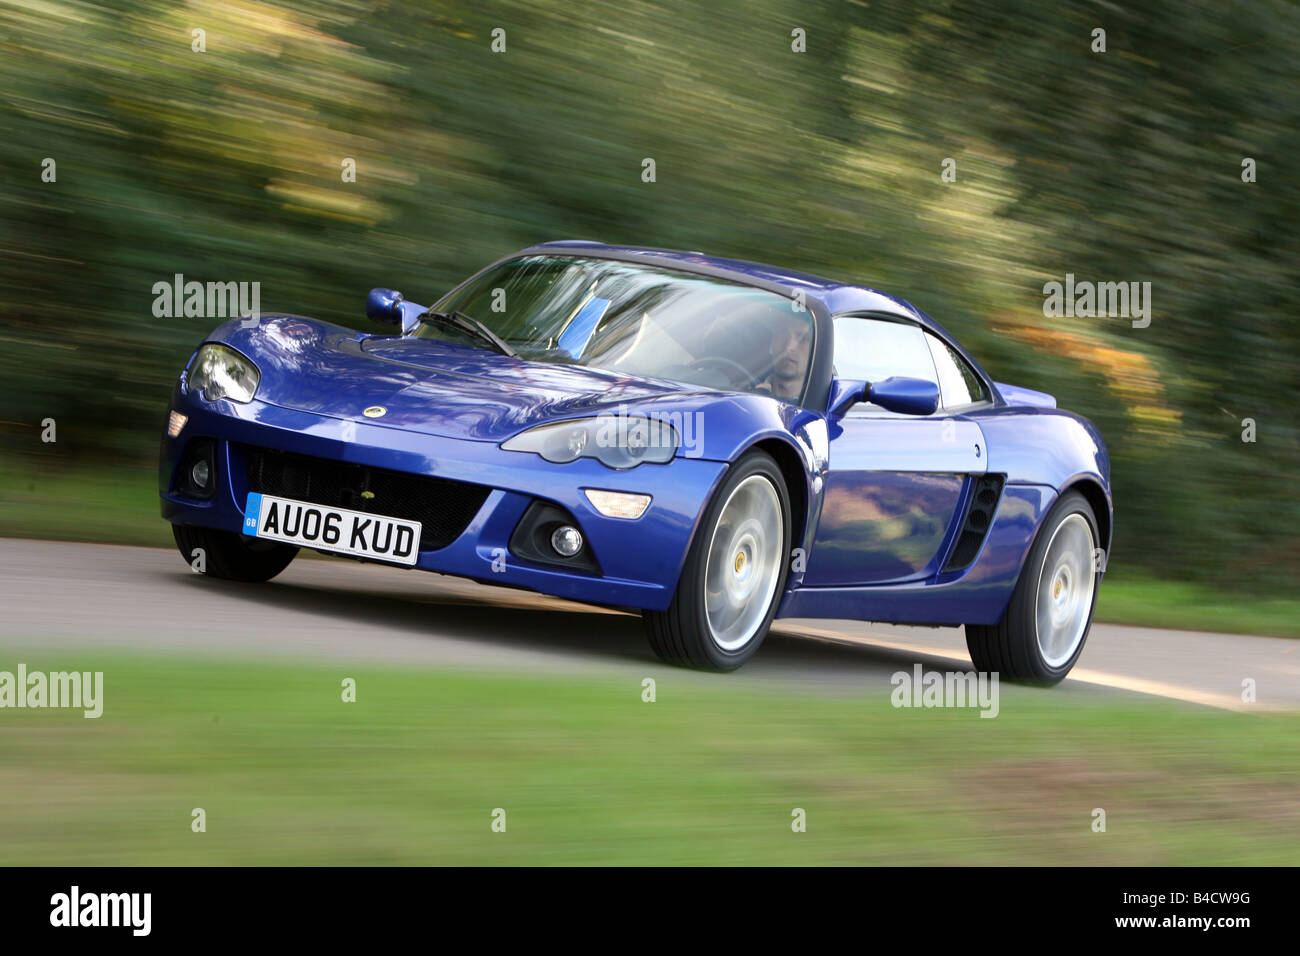 https://c8.alamy.com/comp/B4CW9G/lotus-europa-s-model-year-2006-blue-moving-diagonal-from-the-front-B4CW9G.jpg